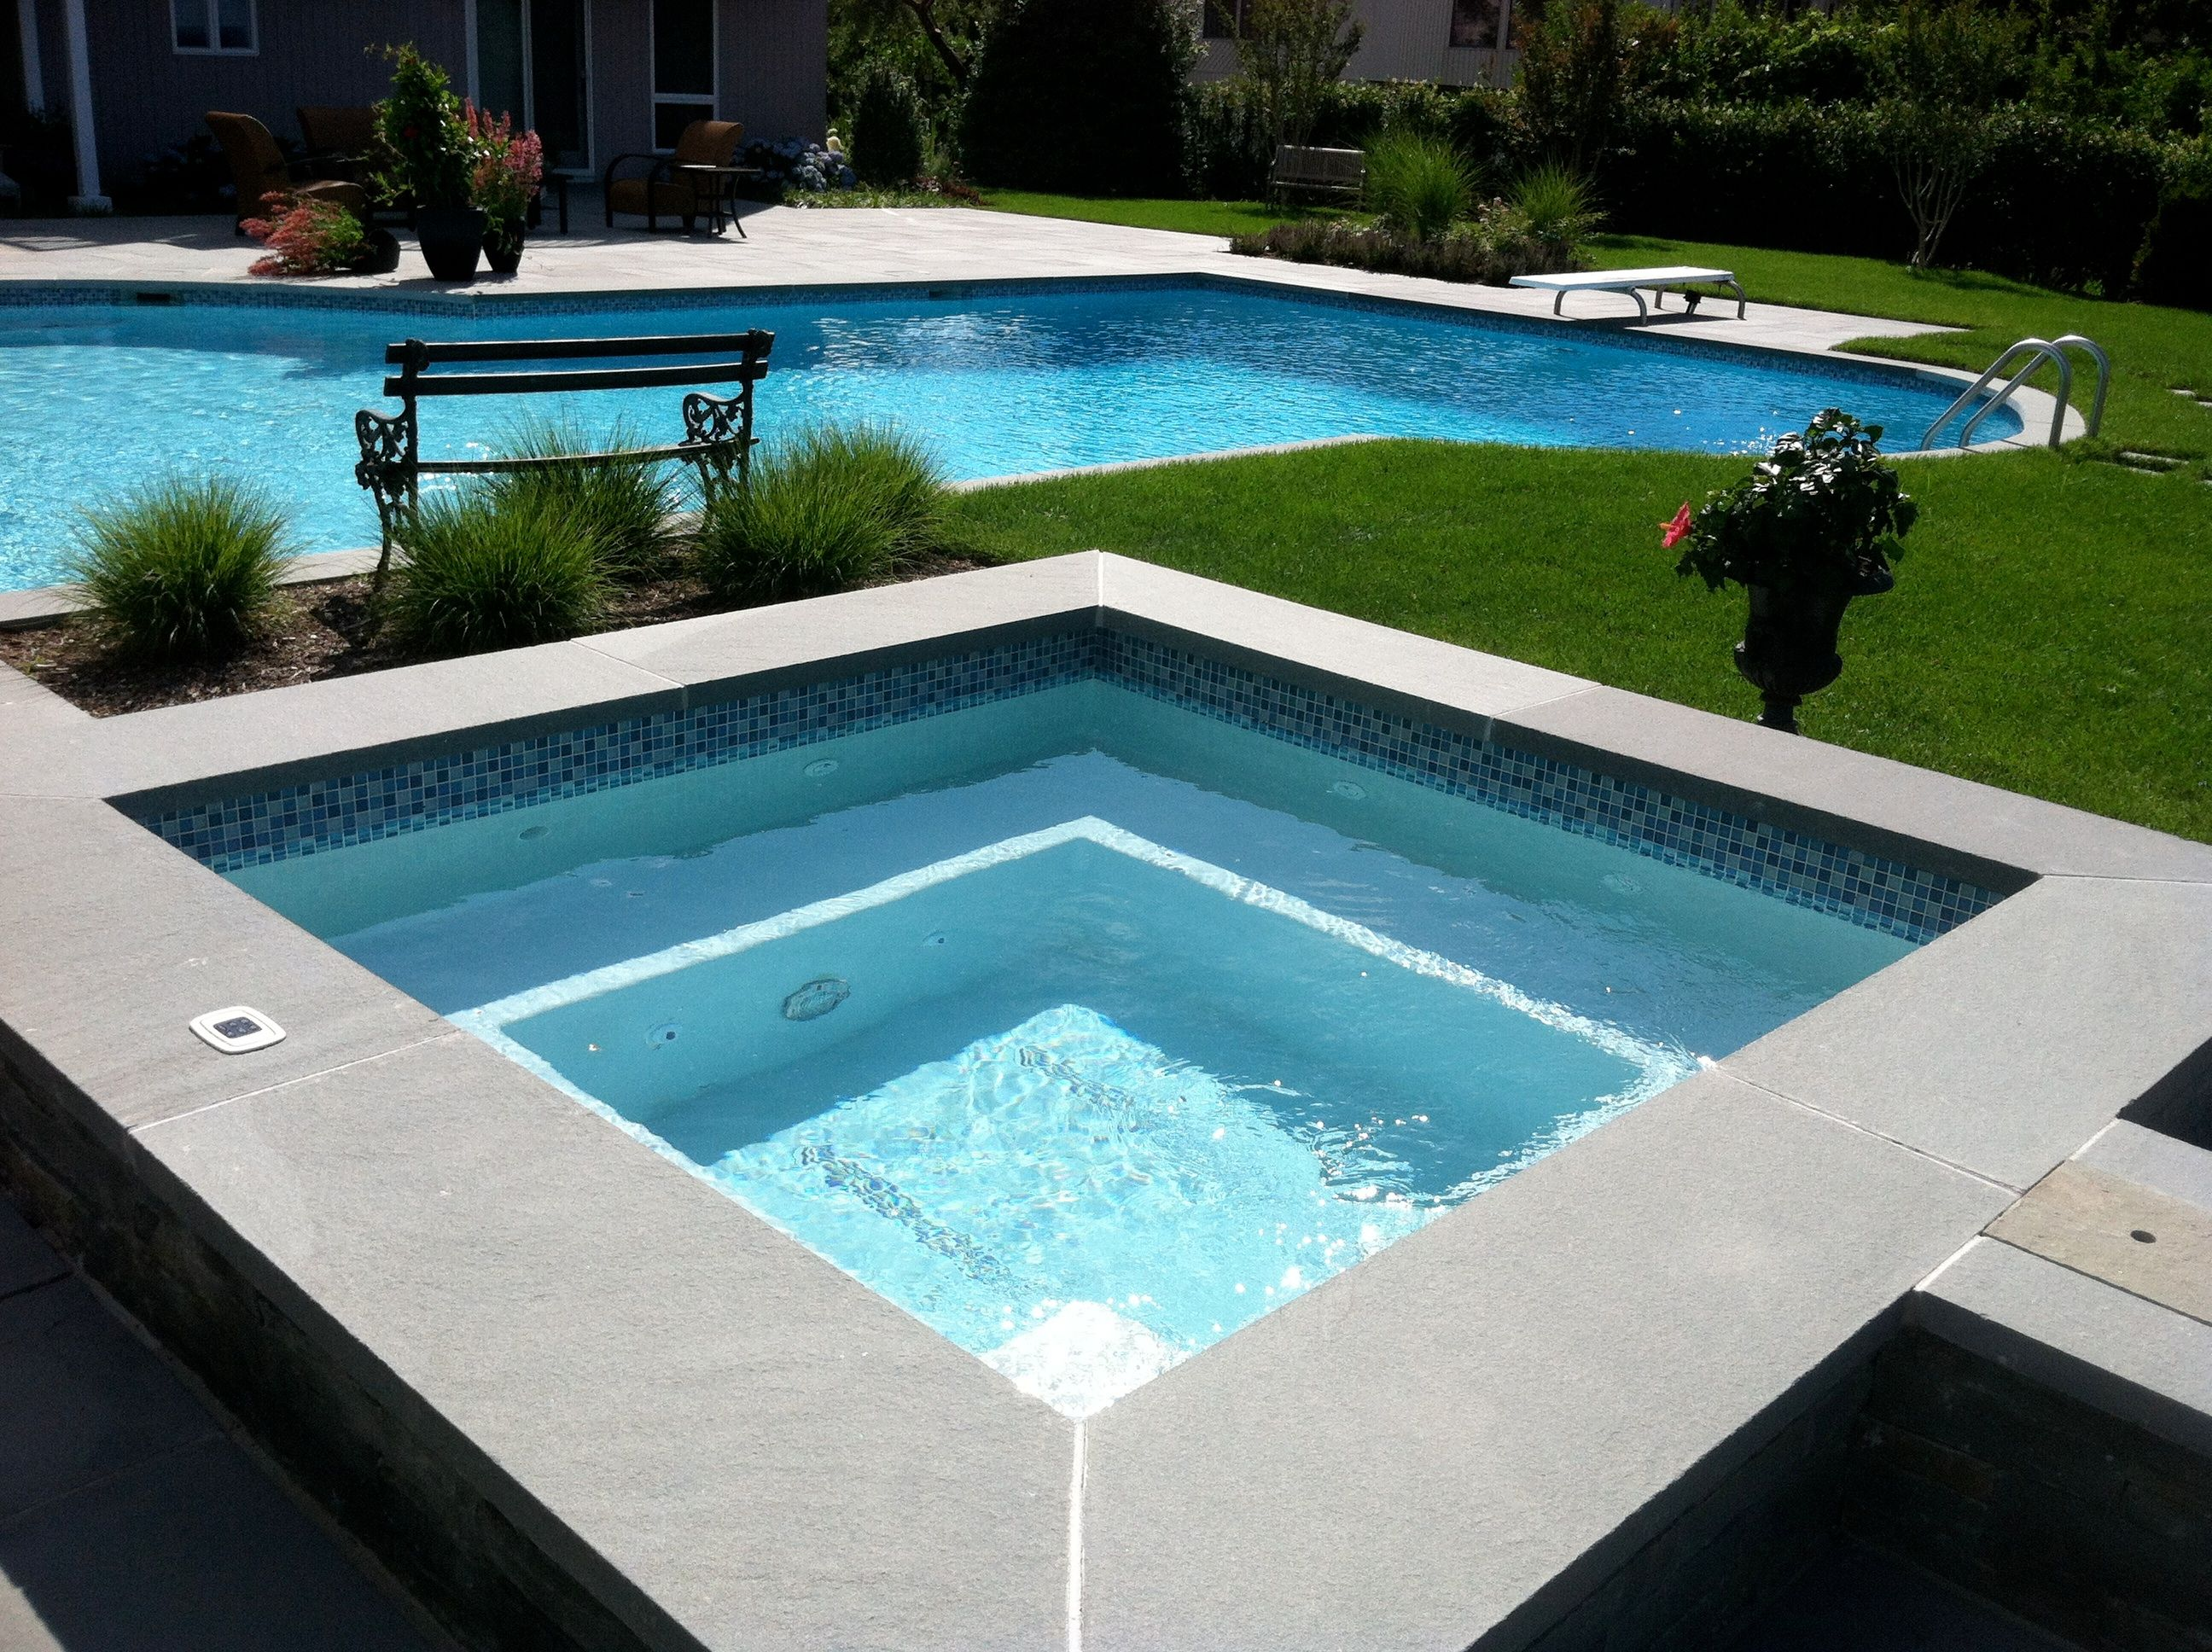 Stand Alone Gunite Spa And Fee Form Pool With Glass Tile